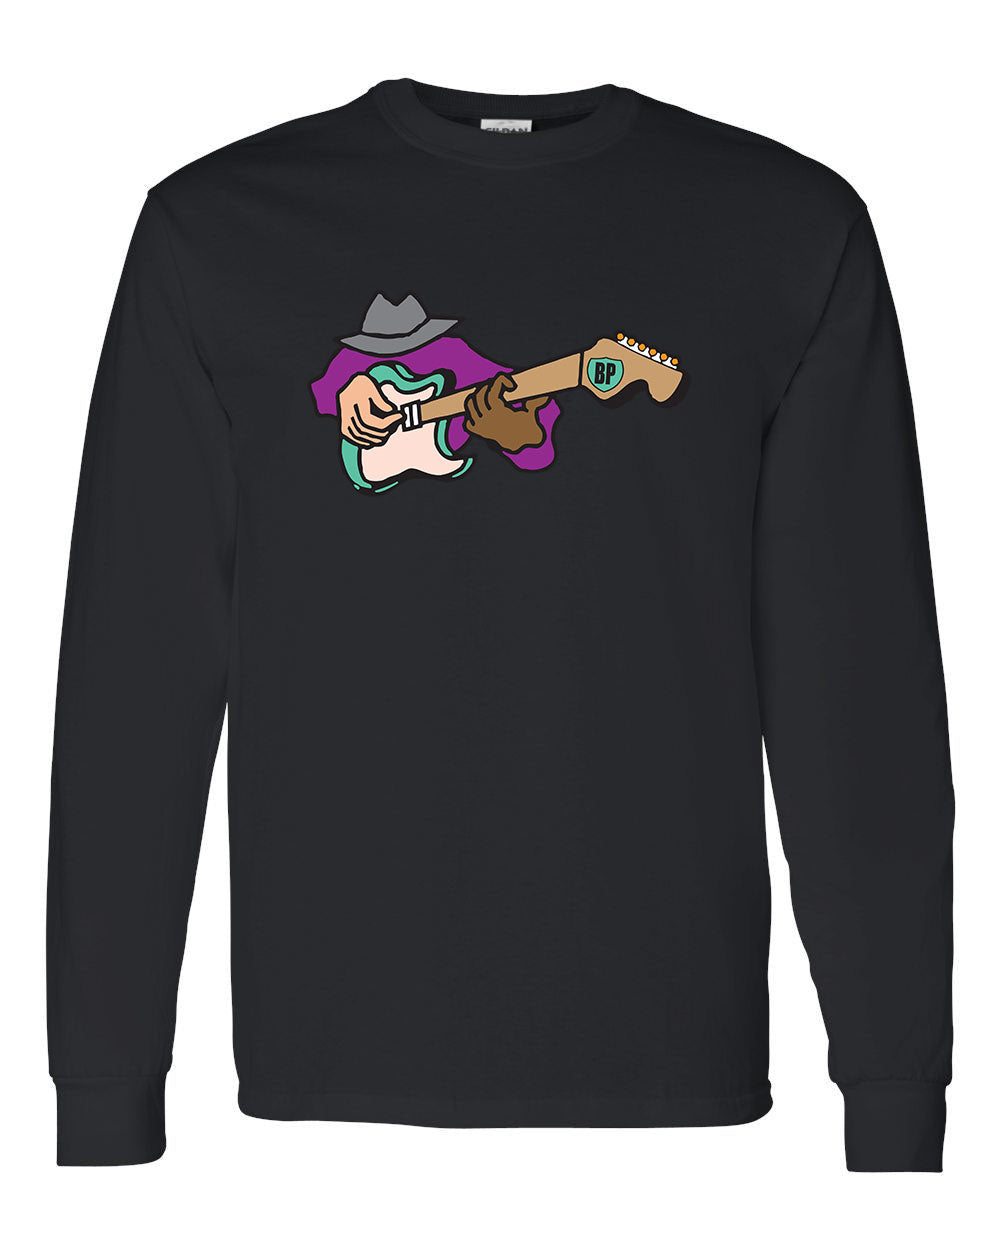 Special Limited Edition Bill Perry Guitar Dude Long Sleeve